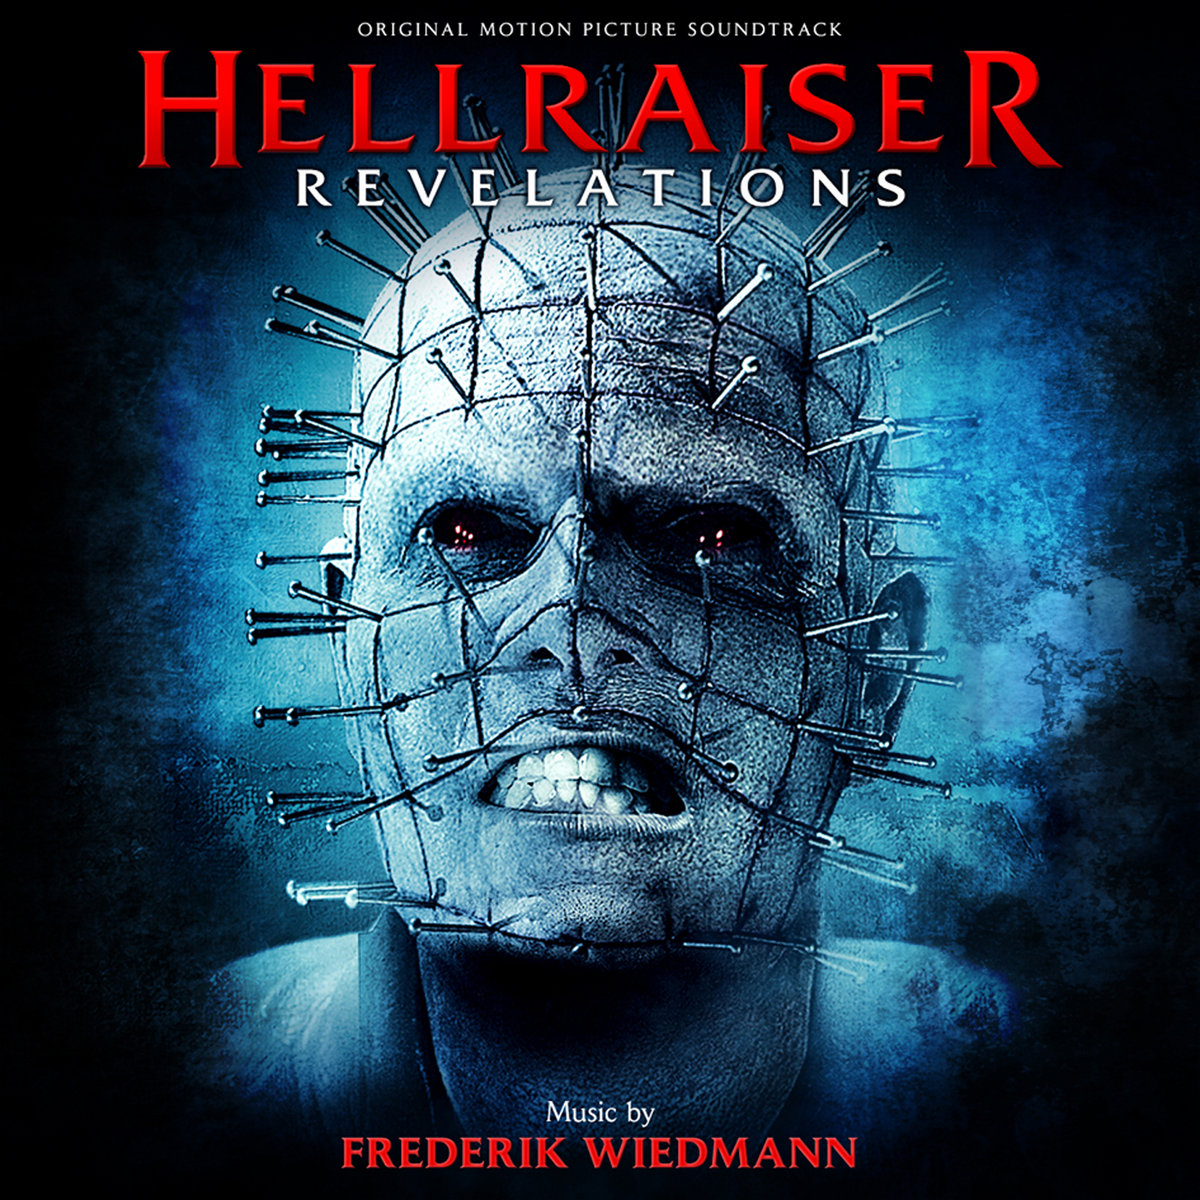 hellraiser revelations full movie download